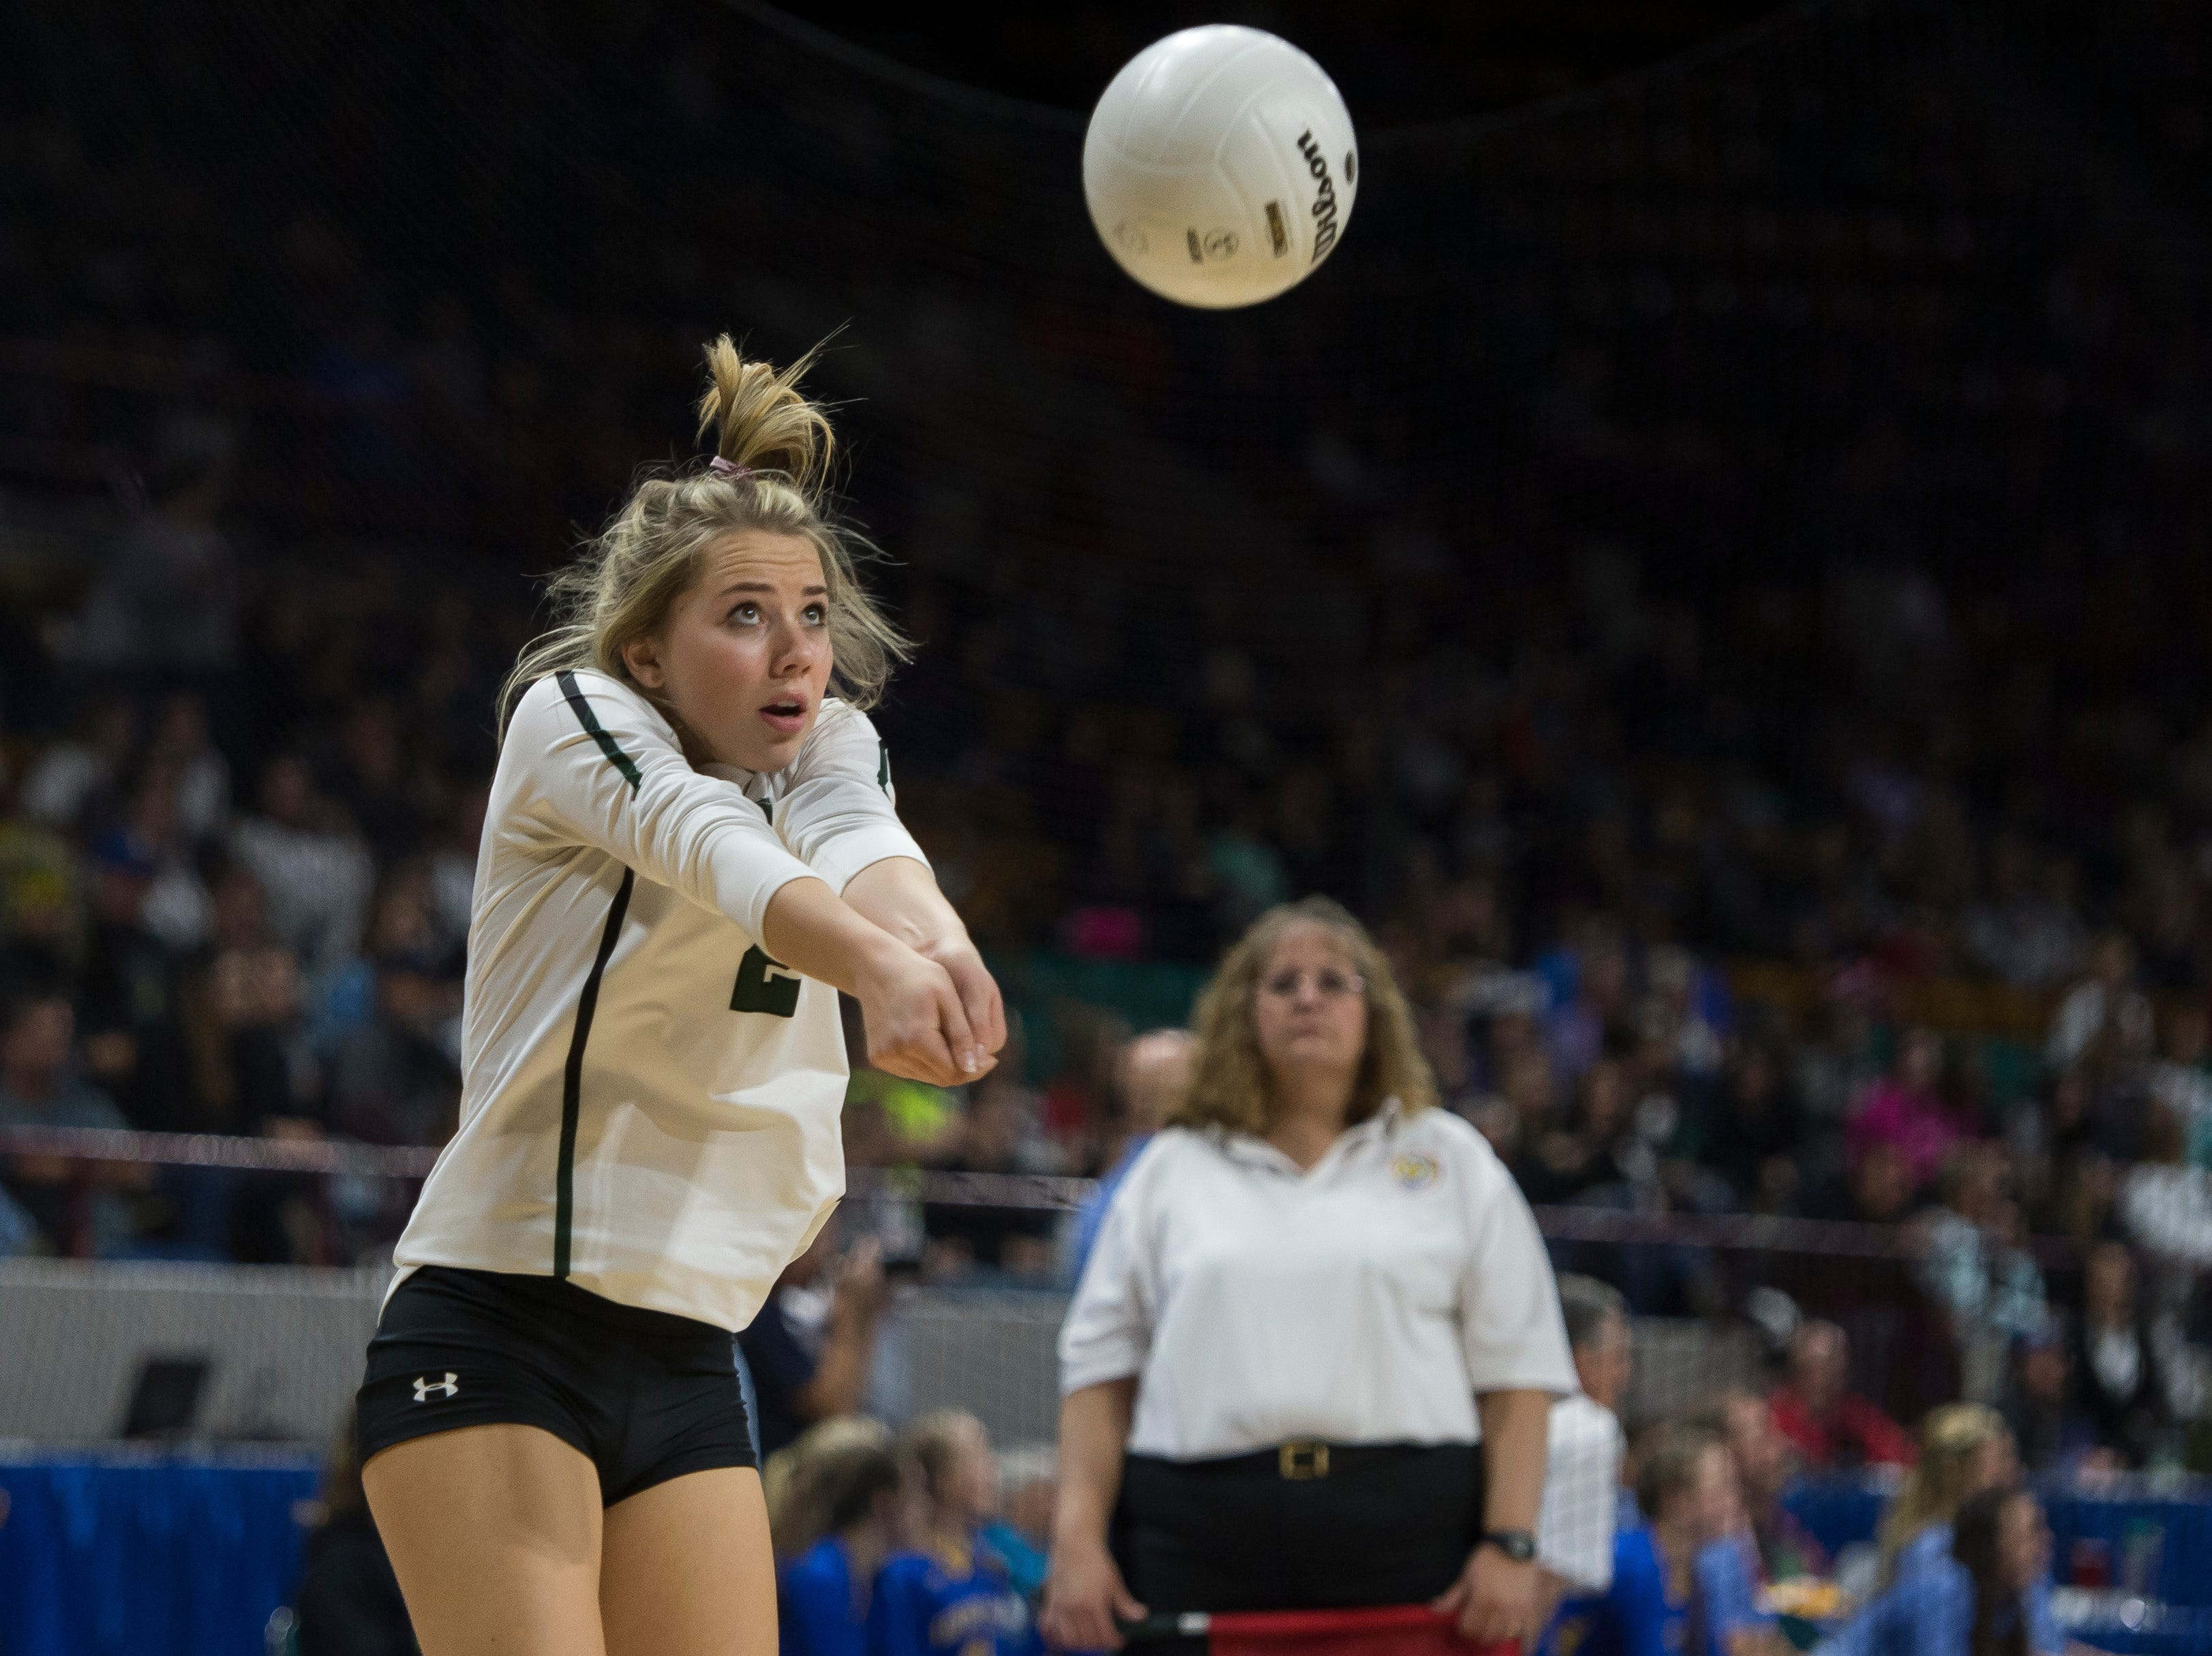 Fossil Ridge High School senior Ellie Brase (2) digs a volley during a state first round game against Windsor High School on Thursday, Nov. 8, 2018, at the Denver Coliseum in Denver, Colo.